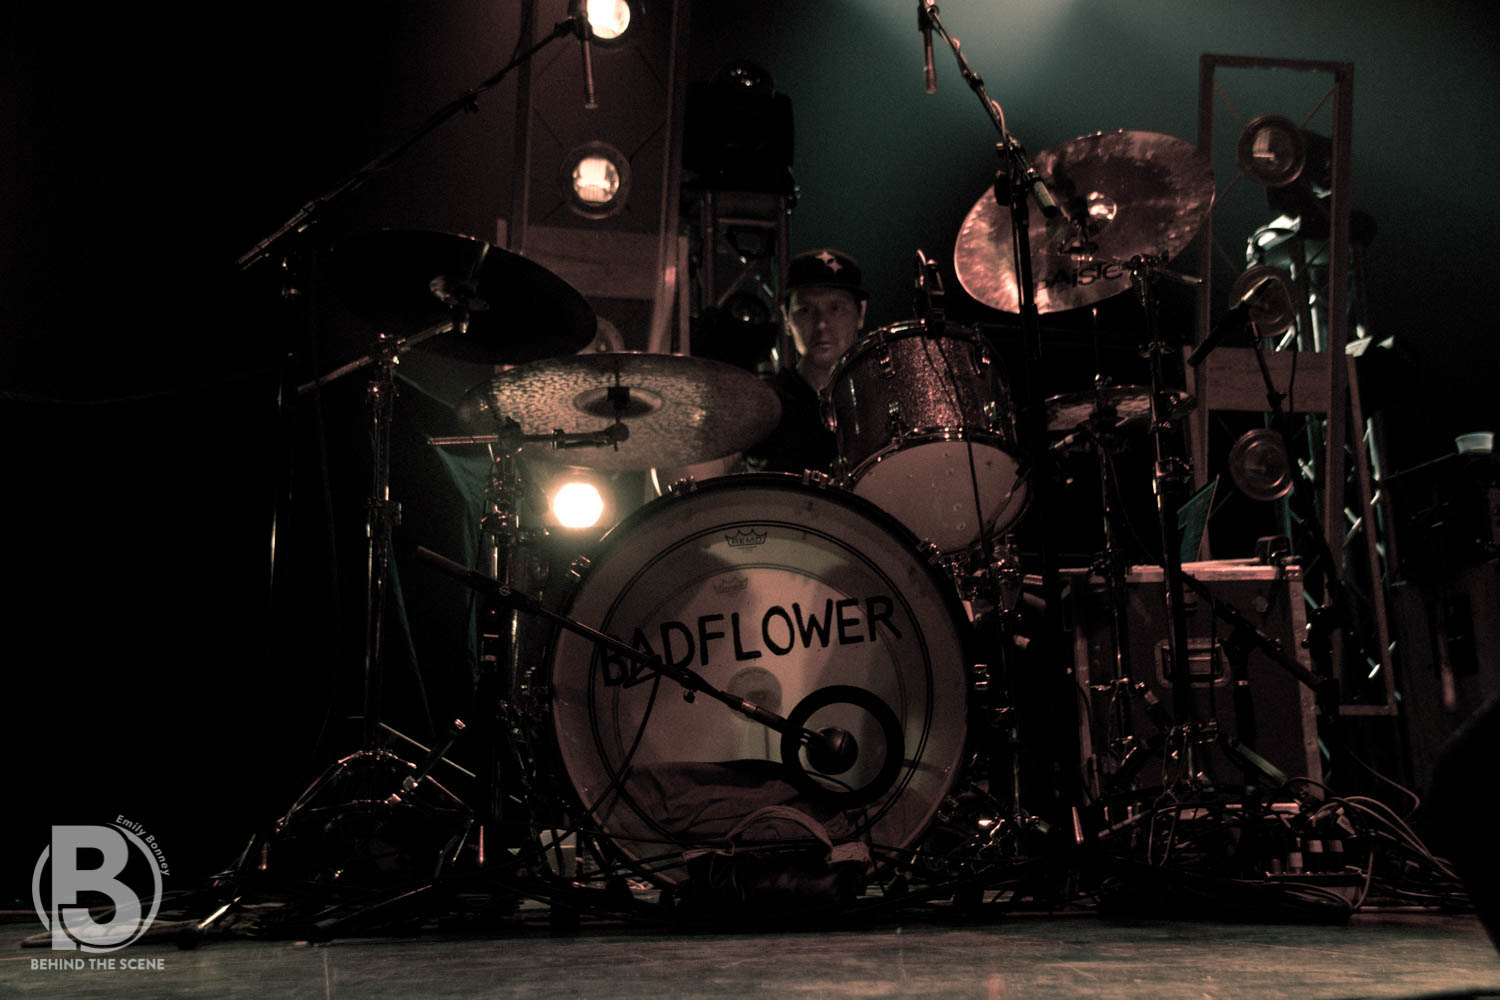 031219 Badflower EB-0218.jpg